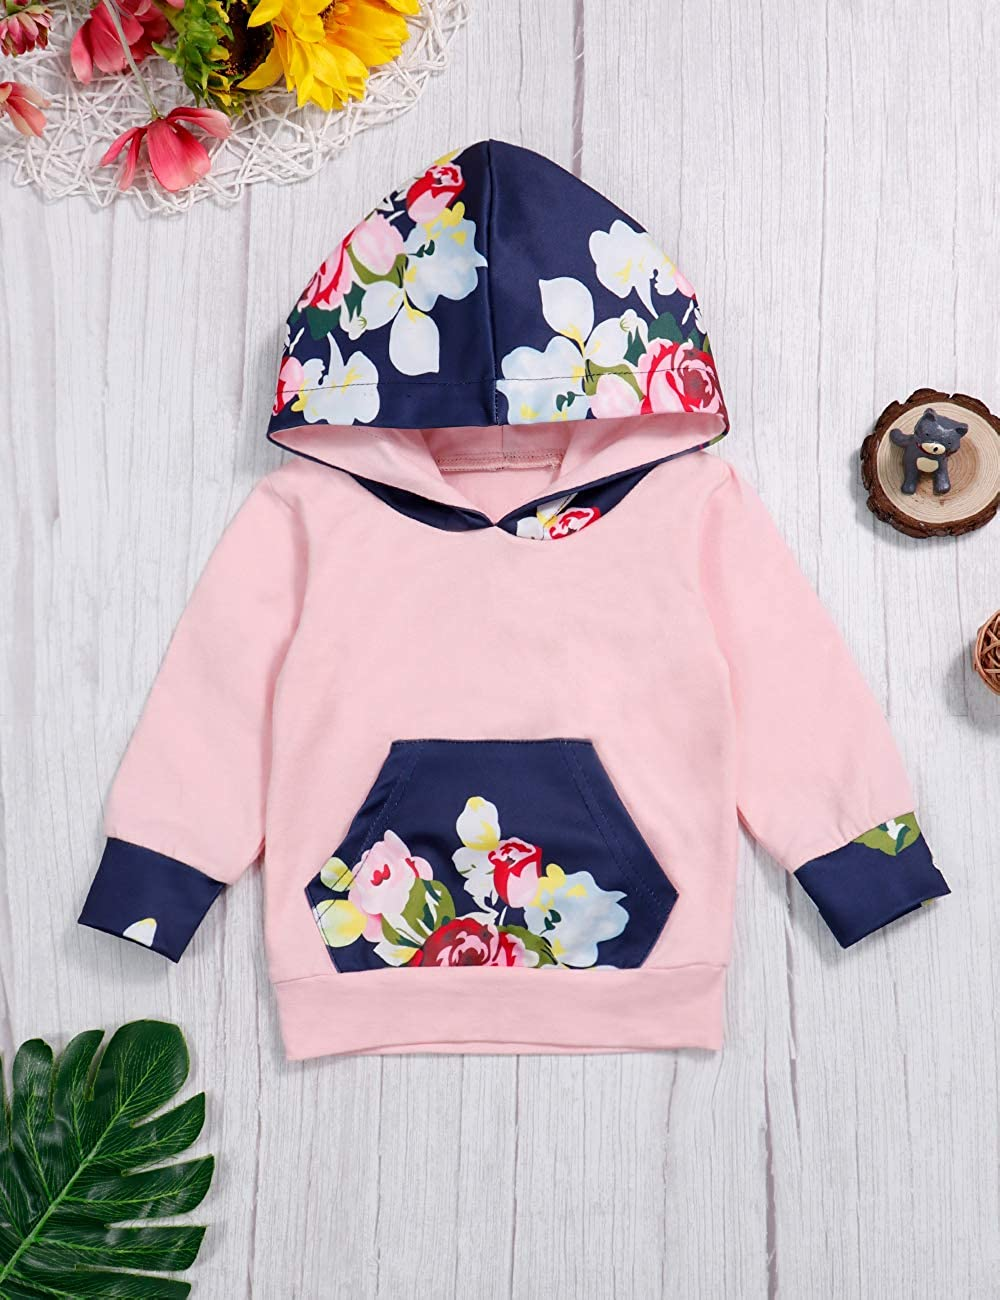 2pcs Baby Girl Clothes Fall Winter Long Sleeve Floral Print Hoodie Pants Outfit Set